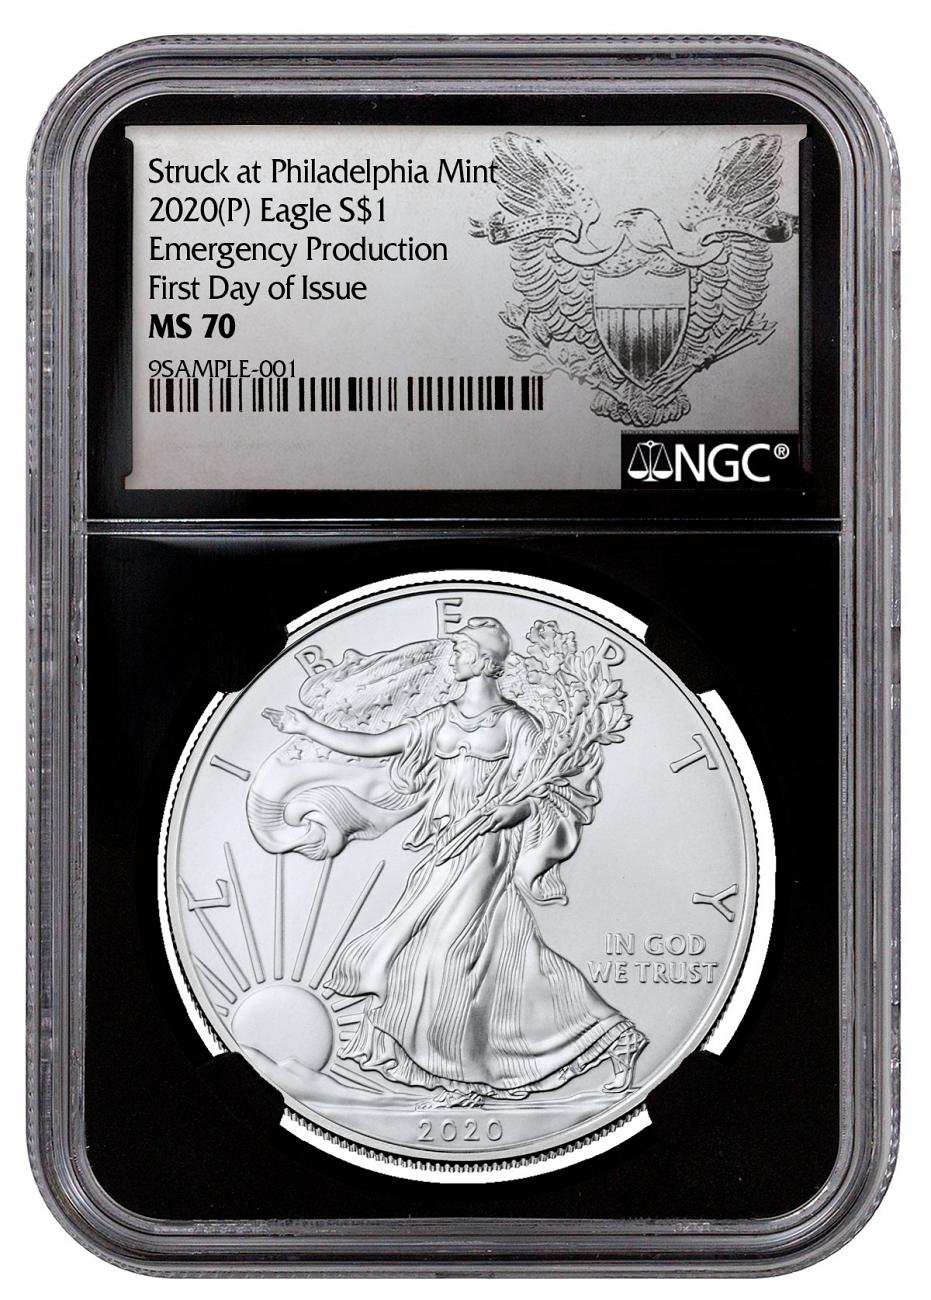 2020-(P) 1 oz Silver American Eagle Struck at Philadelphia $1 Coin NGC MS70 FDI Black Core Holder Exclusive Heraldic Eagle Label